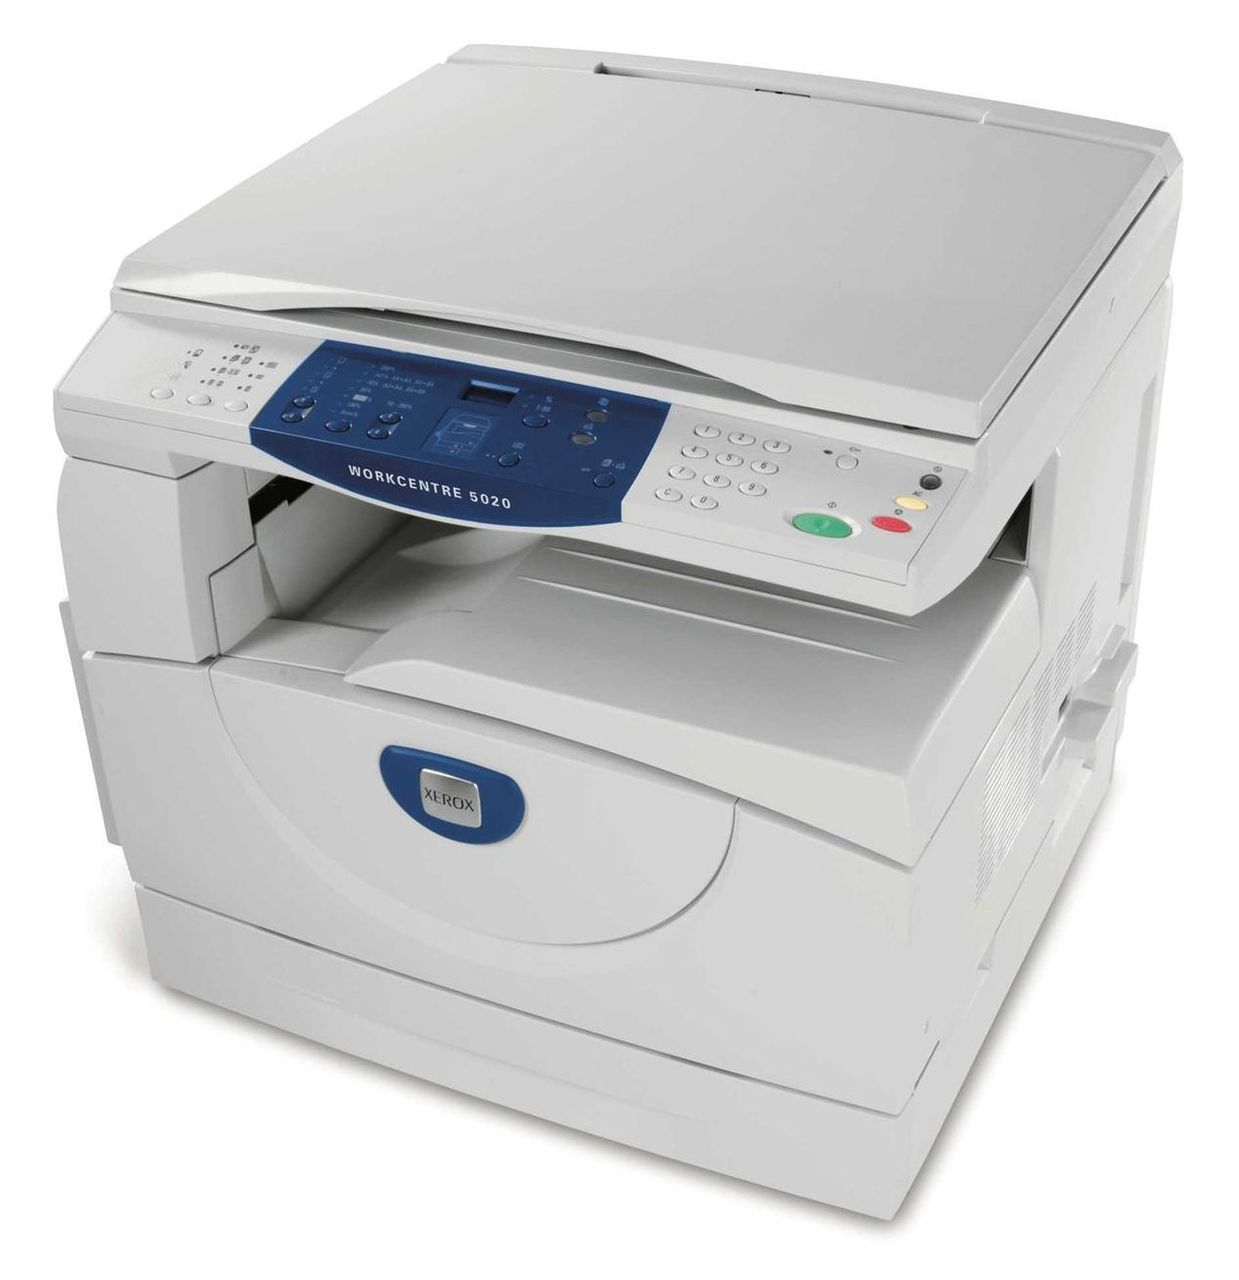 МФУ XEROX WorkCentre 5016 (A3/16 стр/мин.)